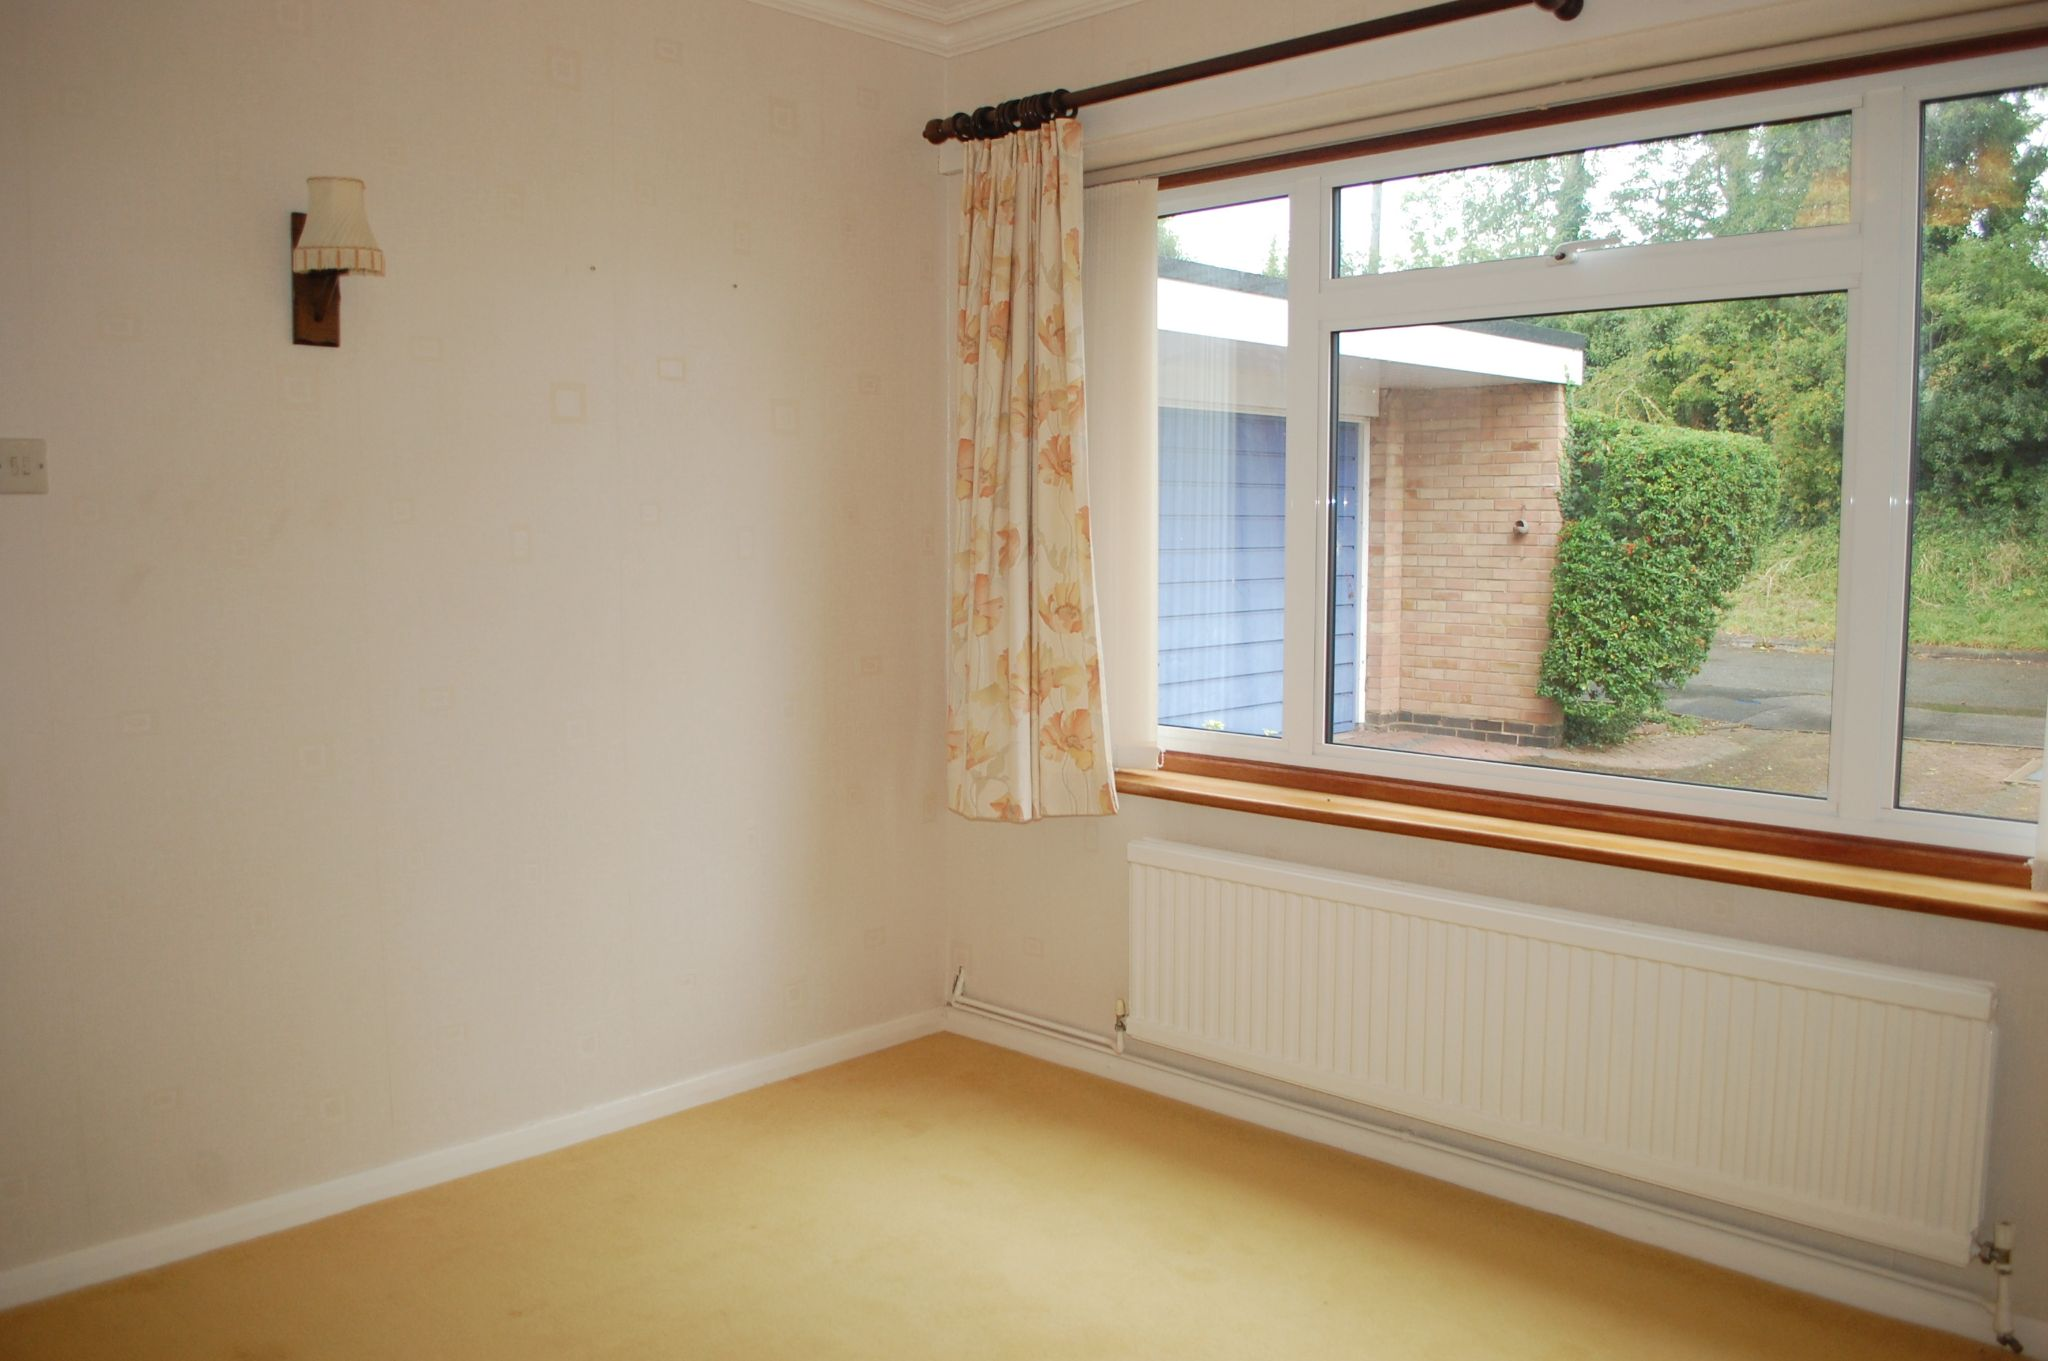 4 bedroom detached house SSTC in Kings Coughton, Alcester - Photograph 9